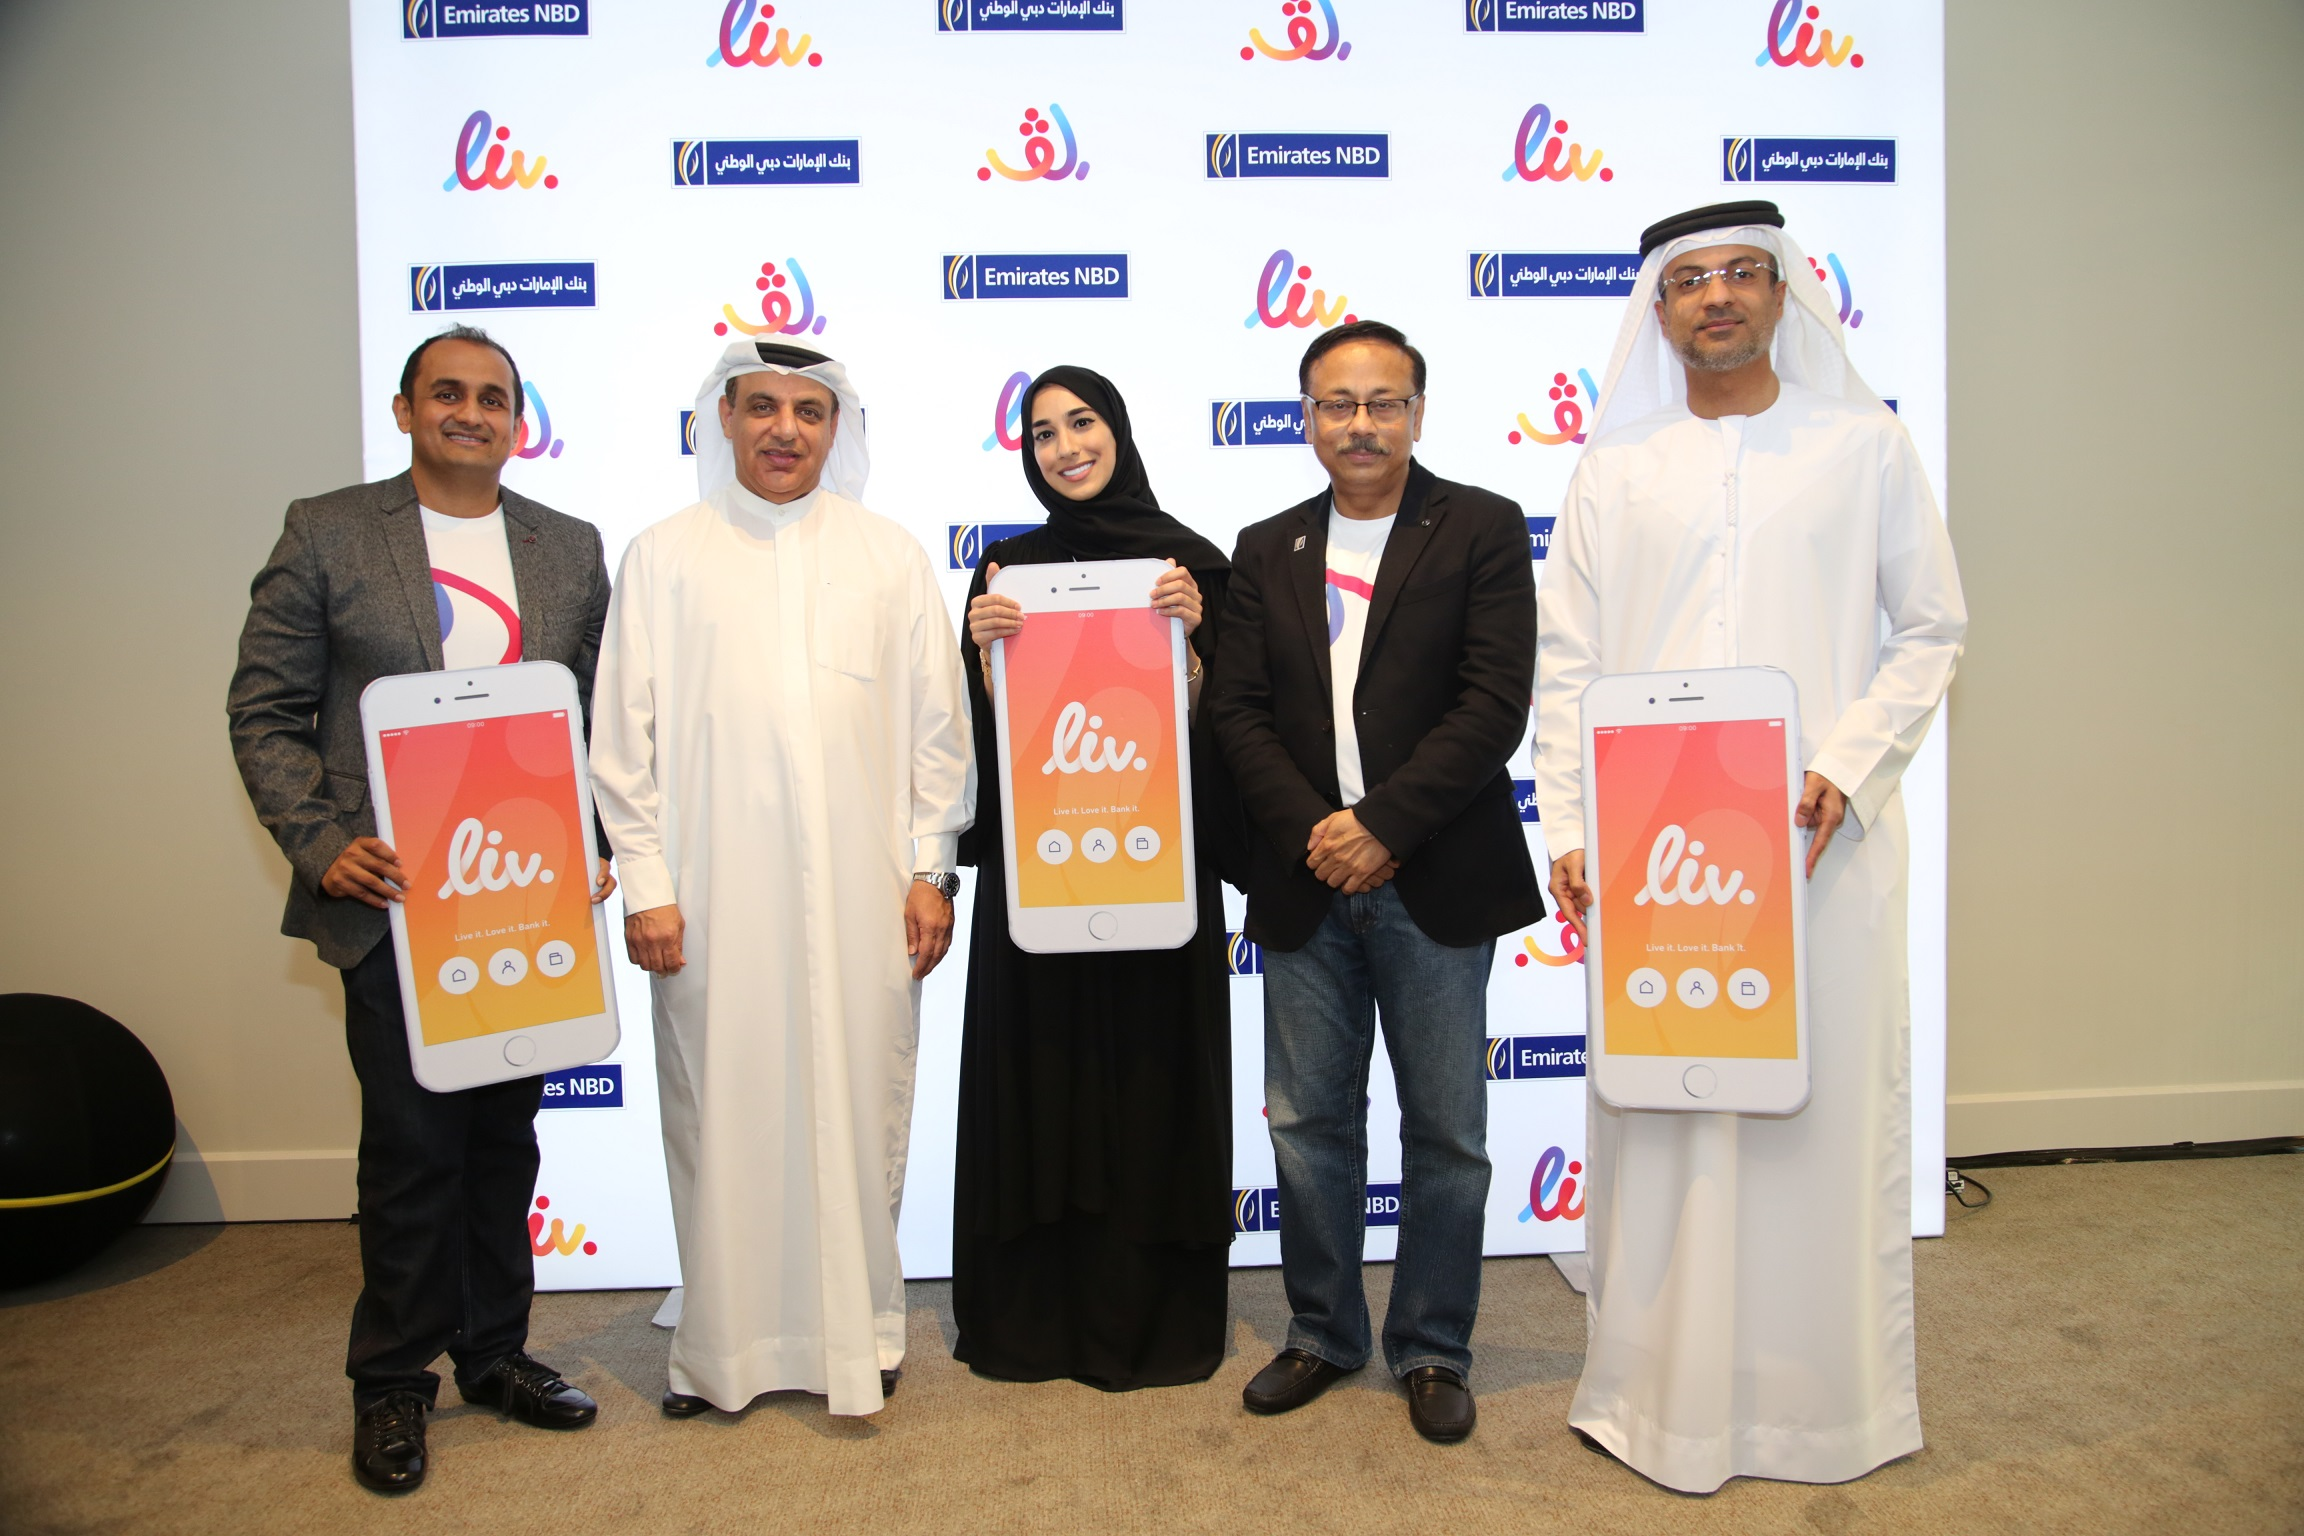 Emirates NBD Launches Liv. Bigital Banking Proposition